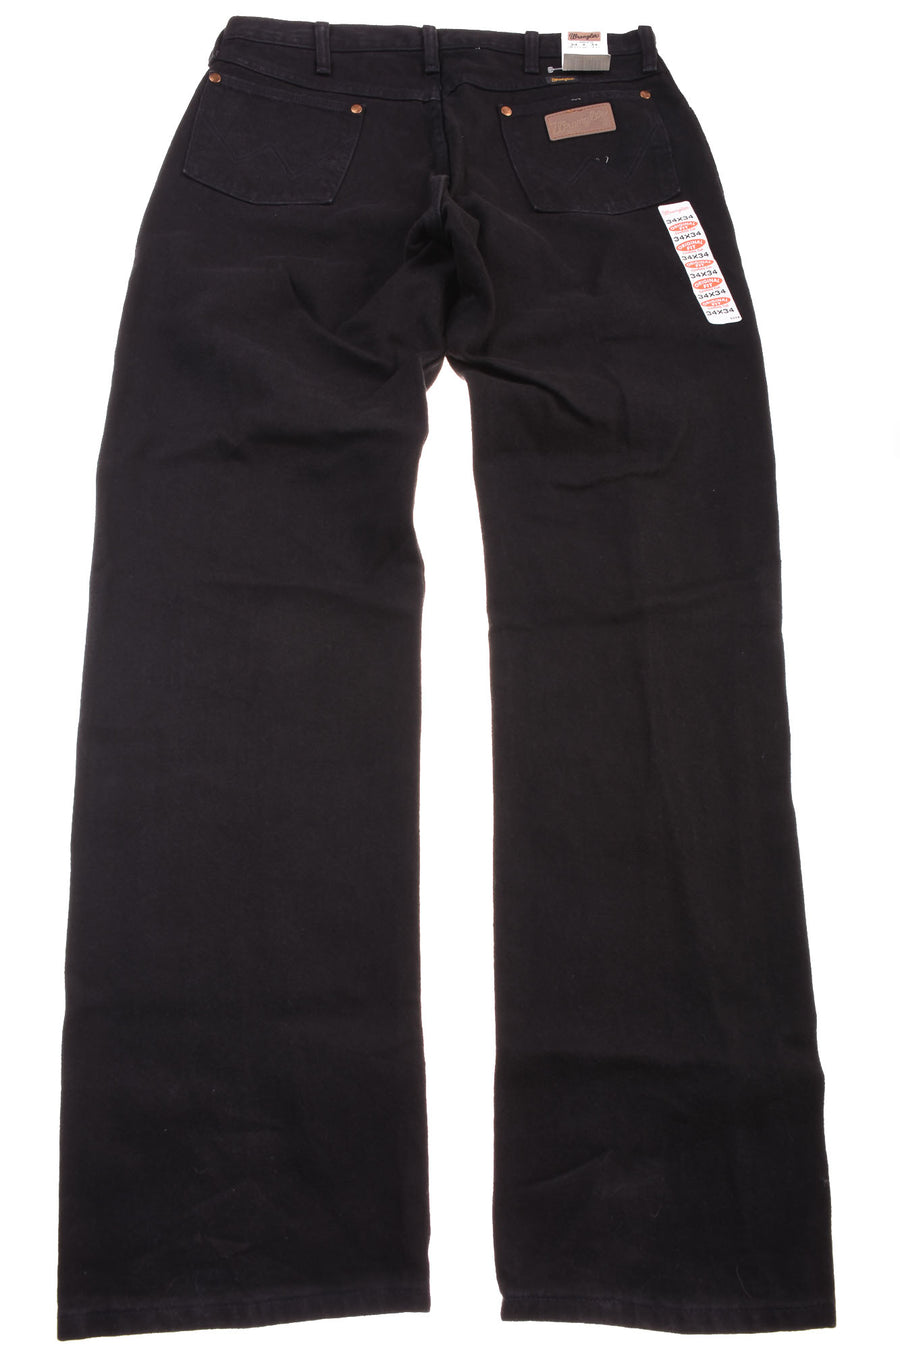 NEW Wrangler Men's Pants 34x34 Black